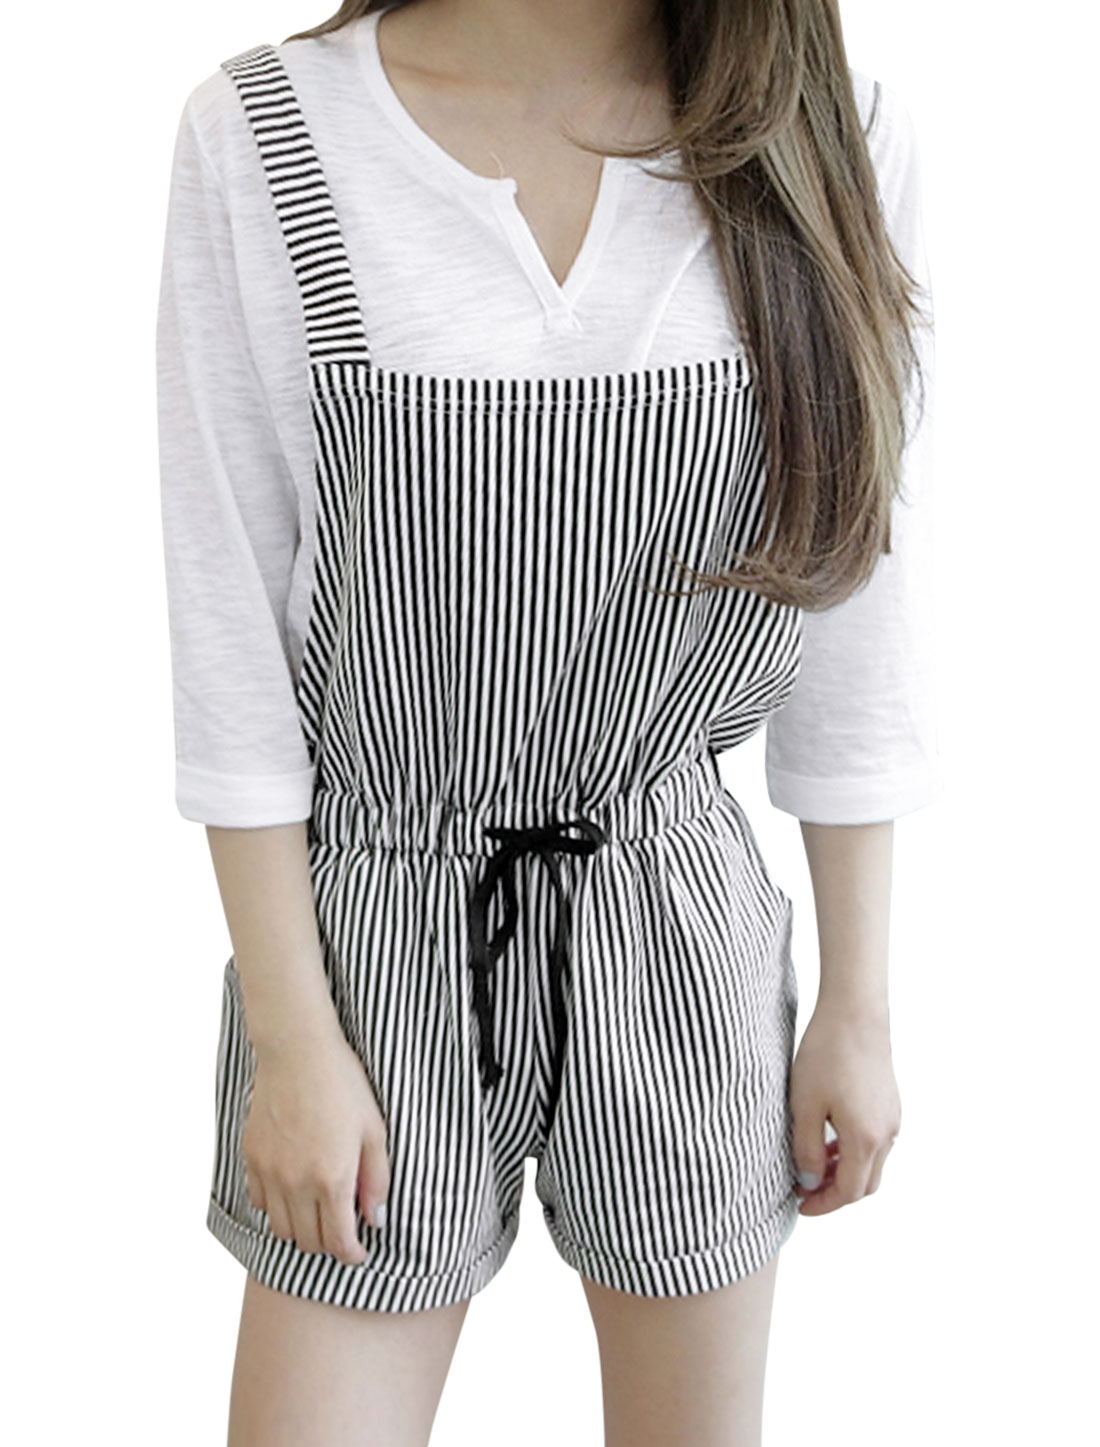 Lady Elastic Waist Roll-up Hem Slant Pockets Striped Suspender Shorts Black White XS